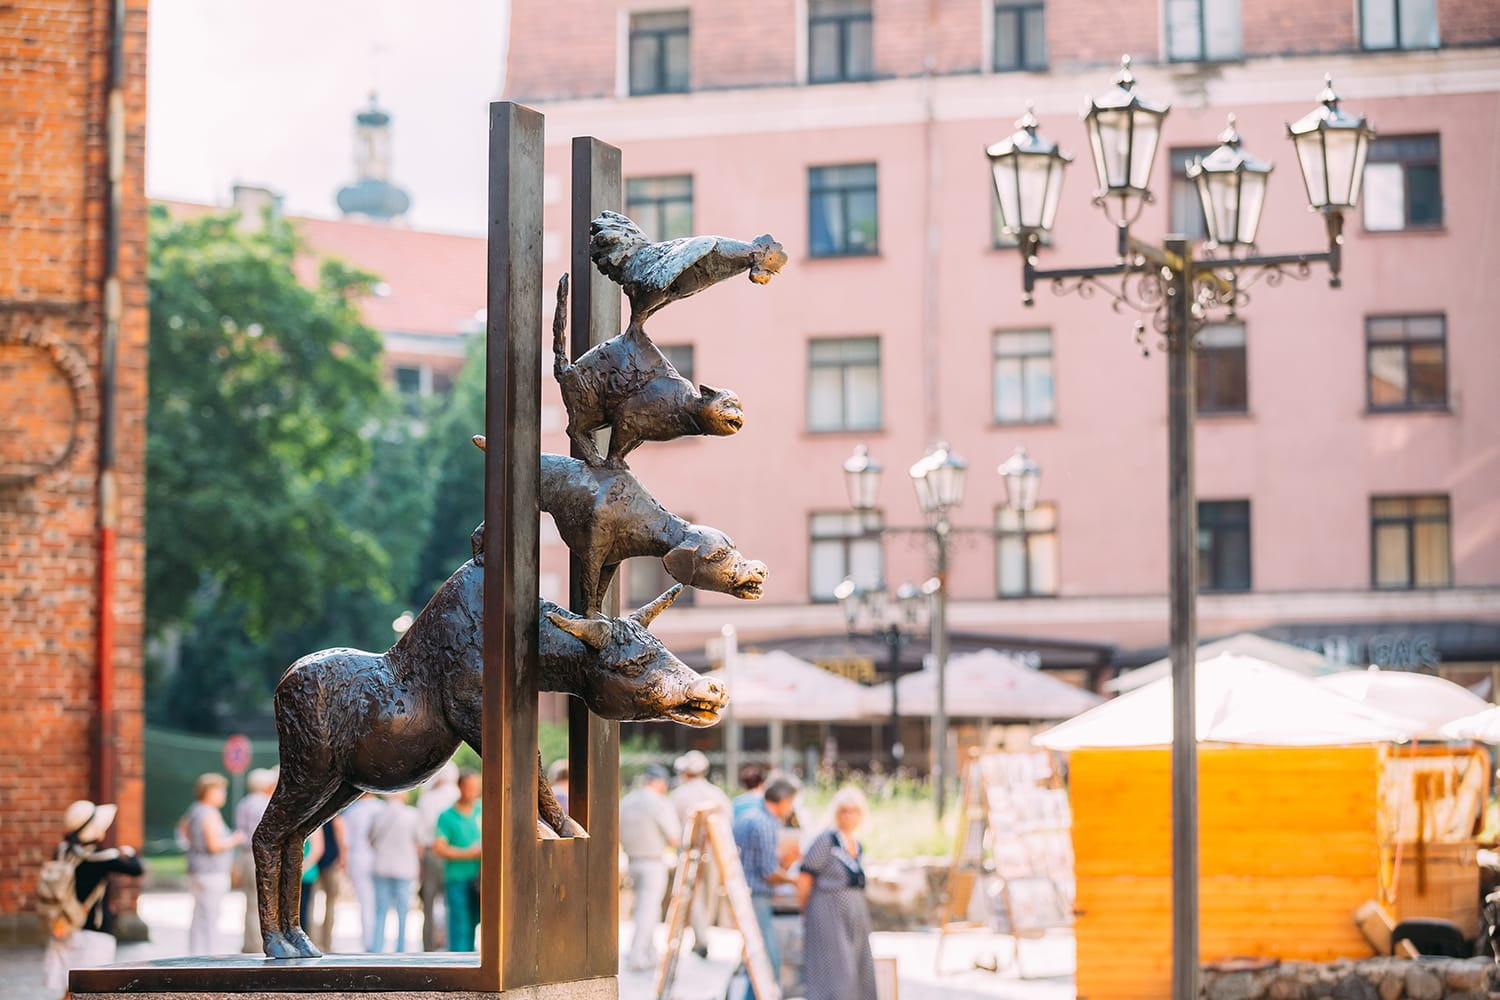 Bronze statue depicting the Bremen Town Musicians located in Riga, Latvia.